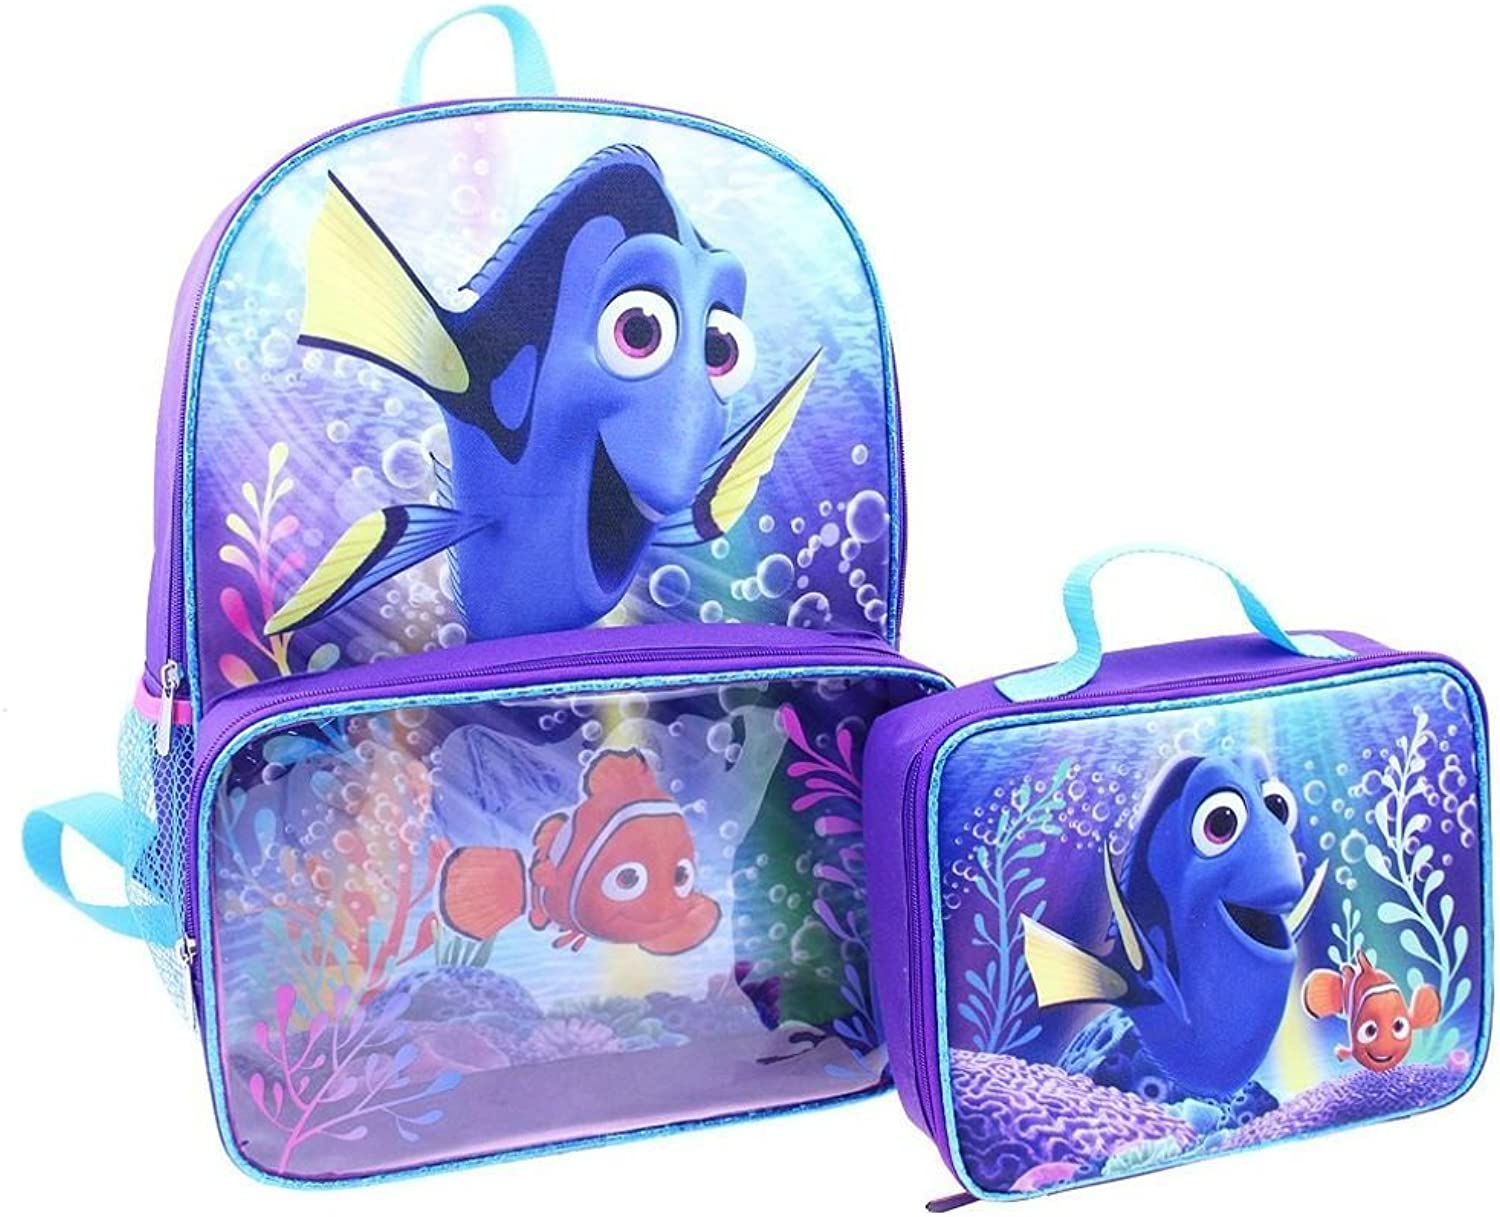 Disney Finding Dory Backpack and Lunch Bag Full Size 16 Inch by Disney